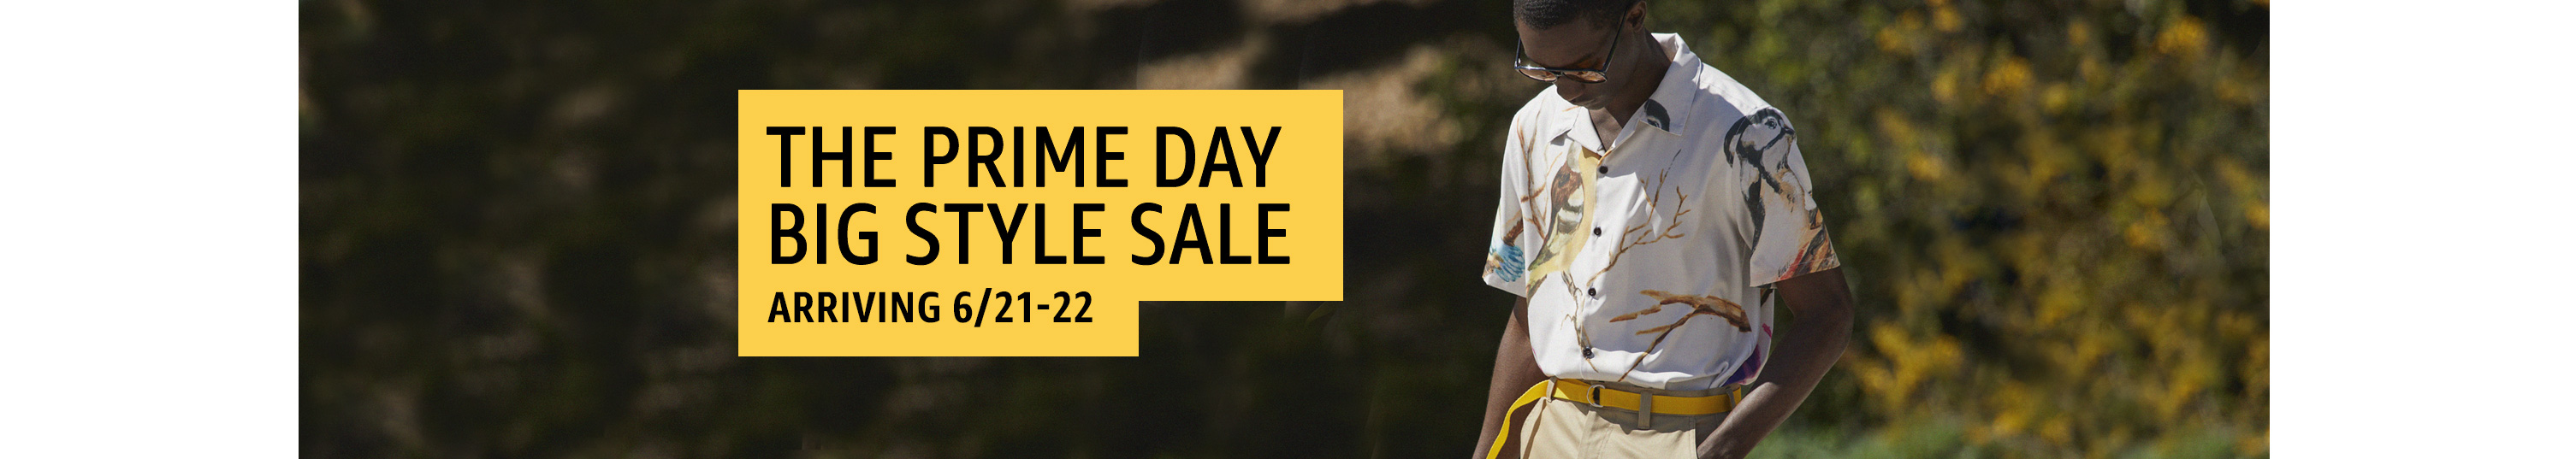 The Prime Day Big Style Sale: Arriving 6/21-22